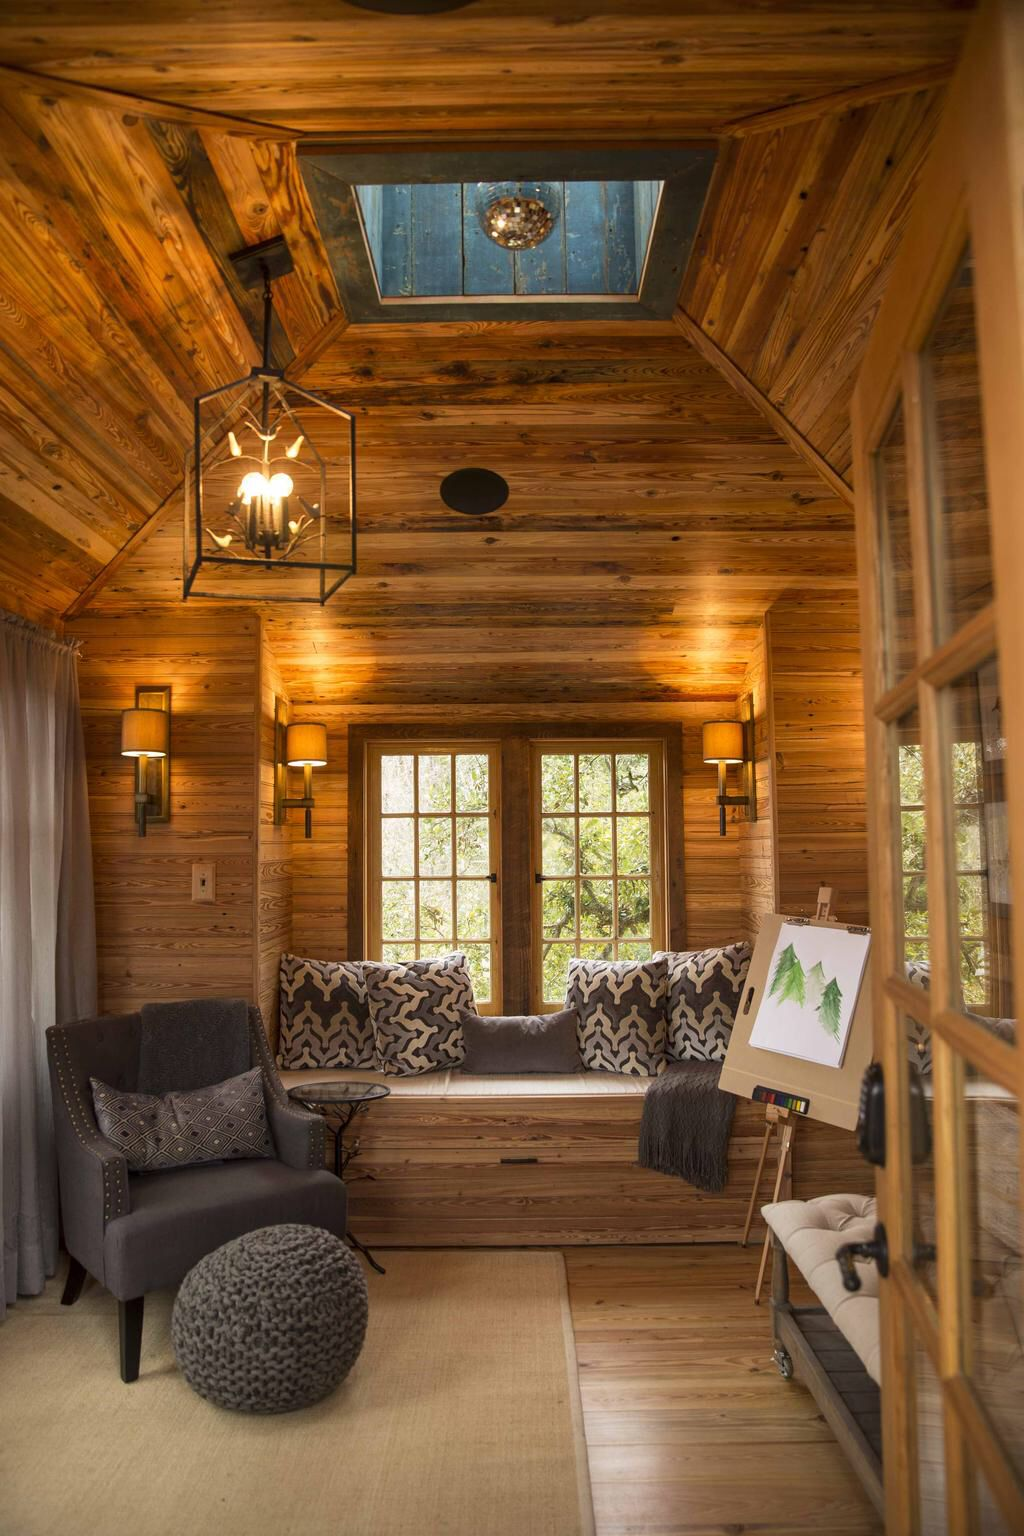 nolo treehouse interior from treehouse masters - Treehouse Masters Interior